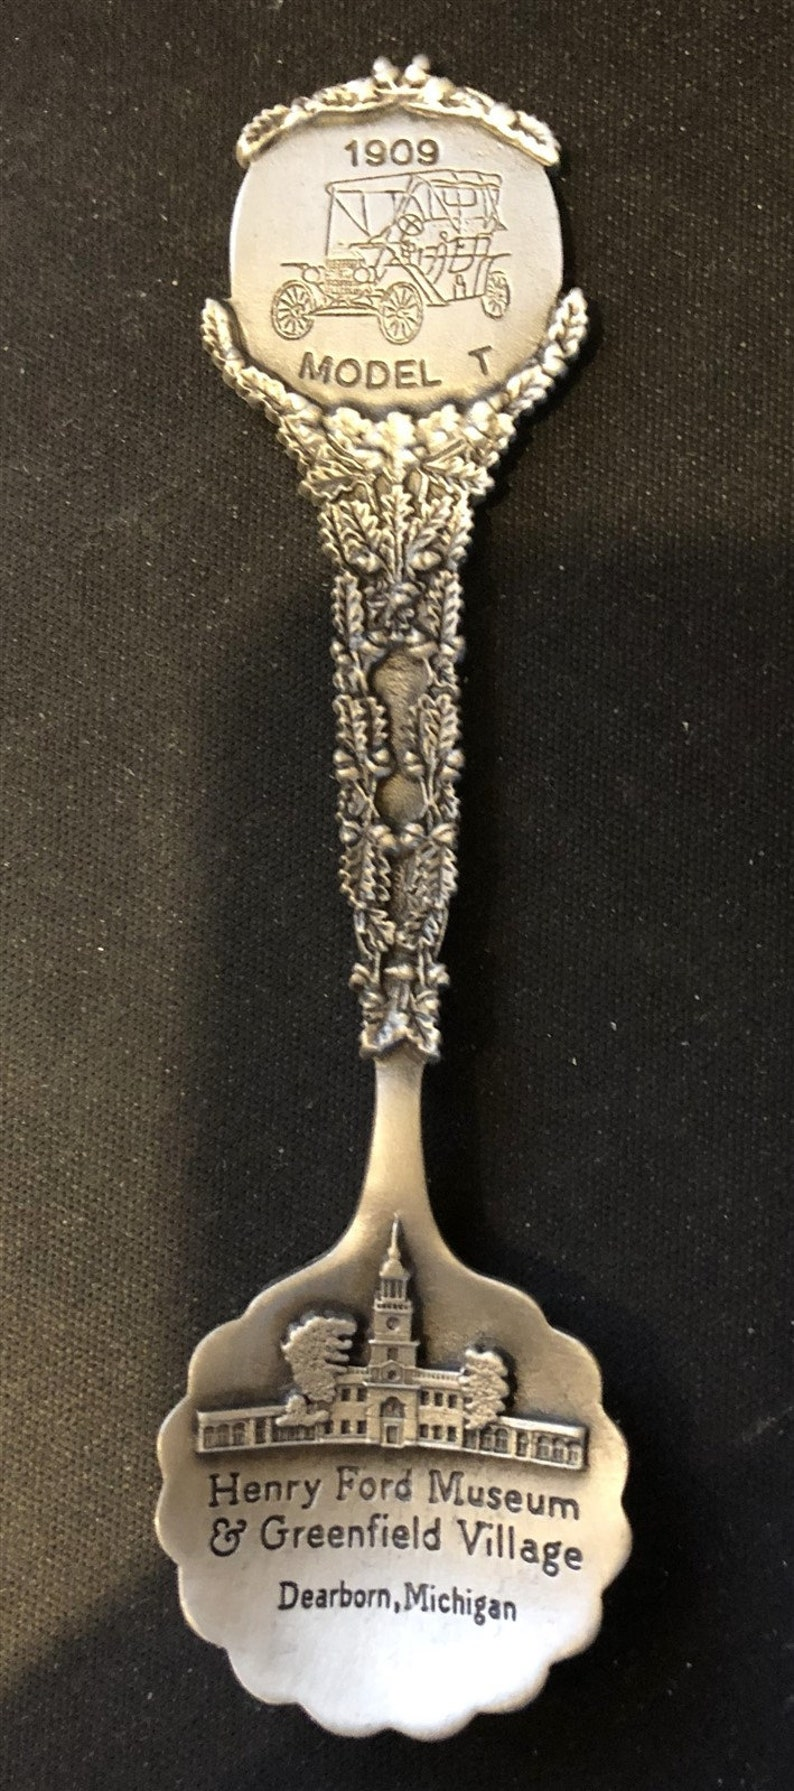 Dearborn on Pewter Souvenir Spoon \u2013 NEW bowl MI Henry Ford Museum top 1909 Model T